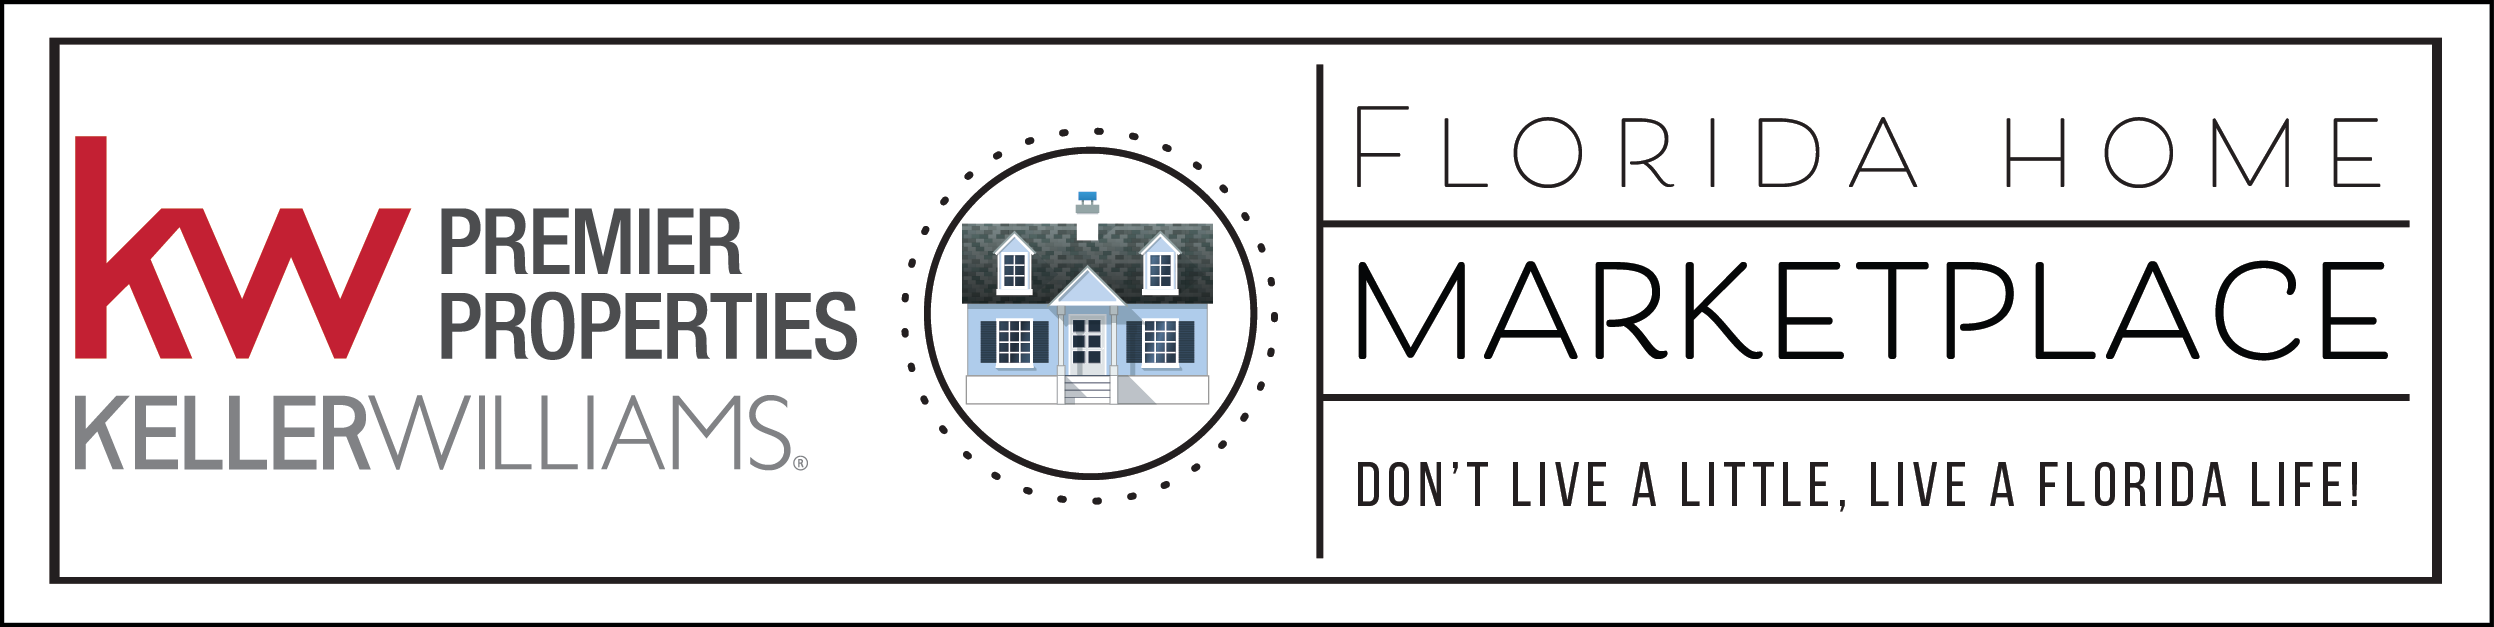 Florida Home Marketplace